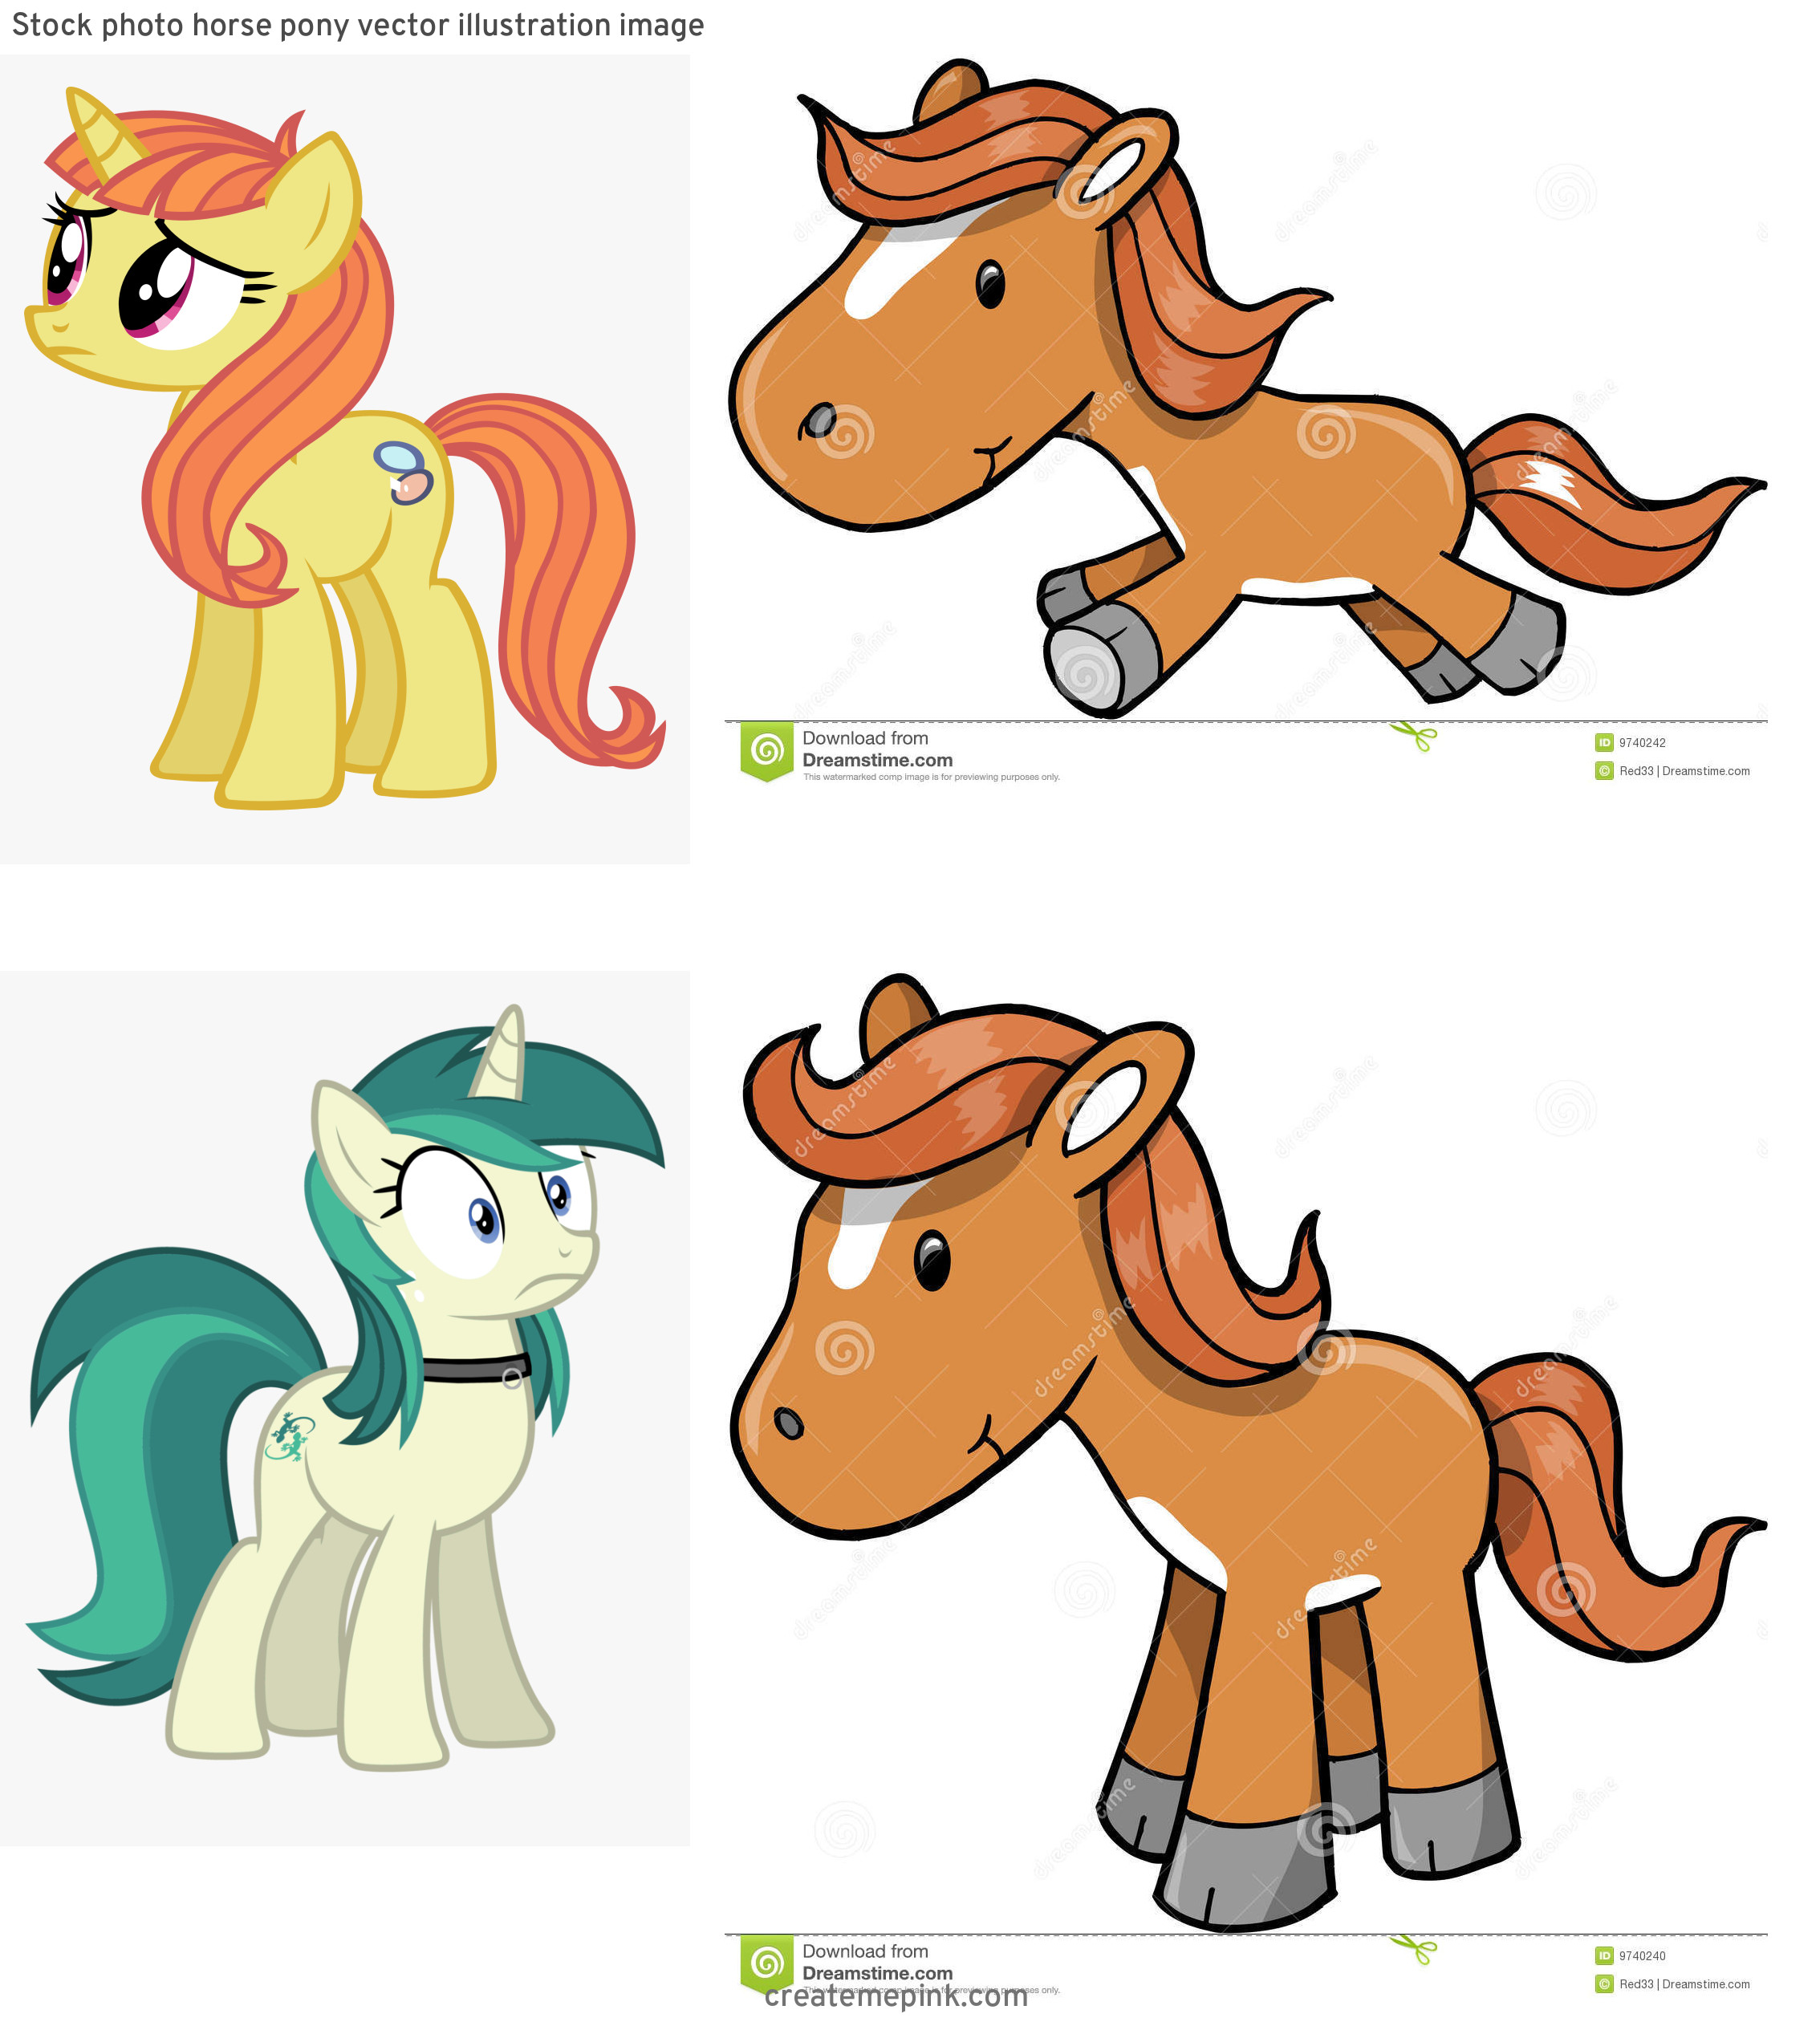 MLP Pony Stallion Vector: Stock Photo Horse Pony Vector Illustration Image